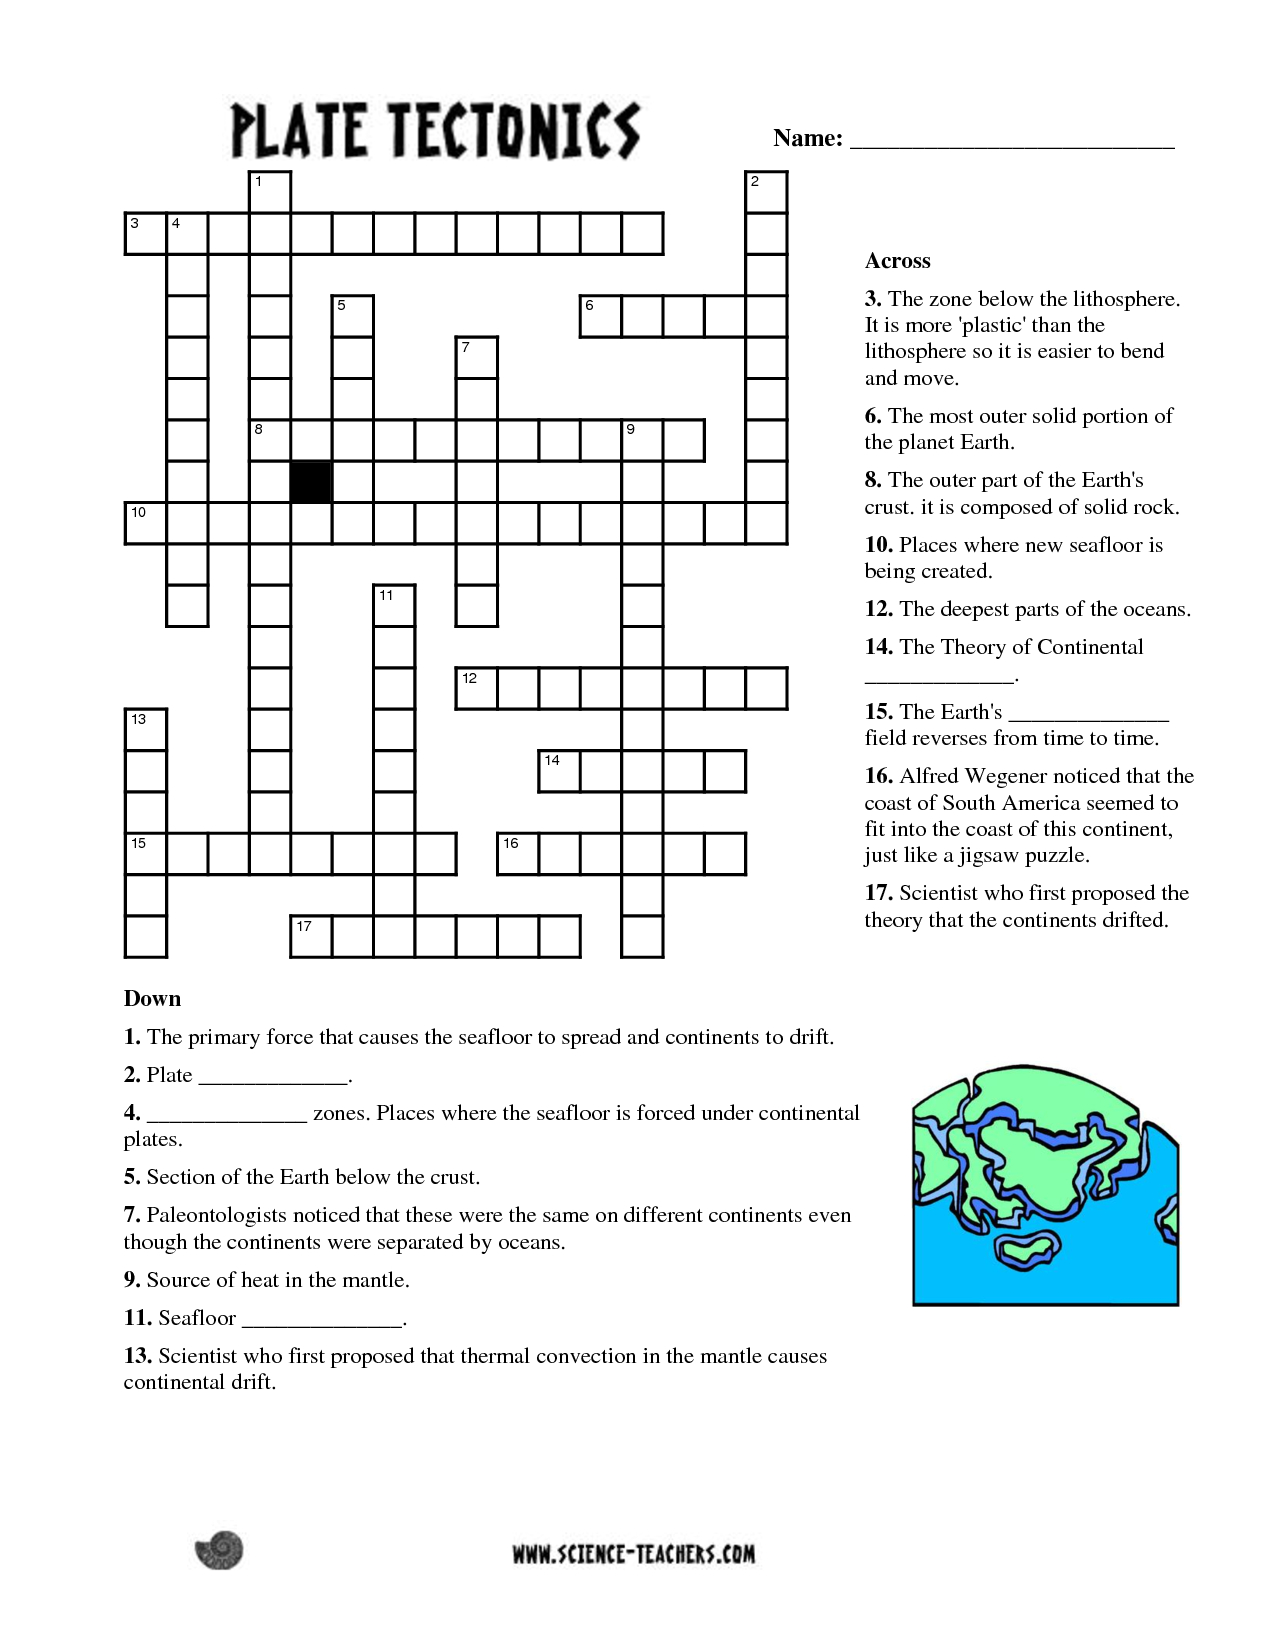 Planets Crossword Puzzle Worksheet - Pics About Space | Fun Science - Printable Crossword Puzzles Science